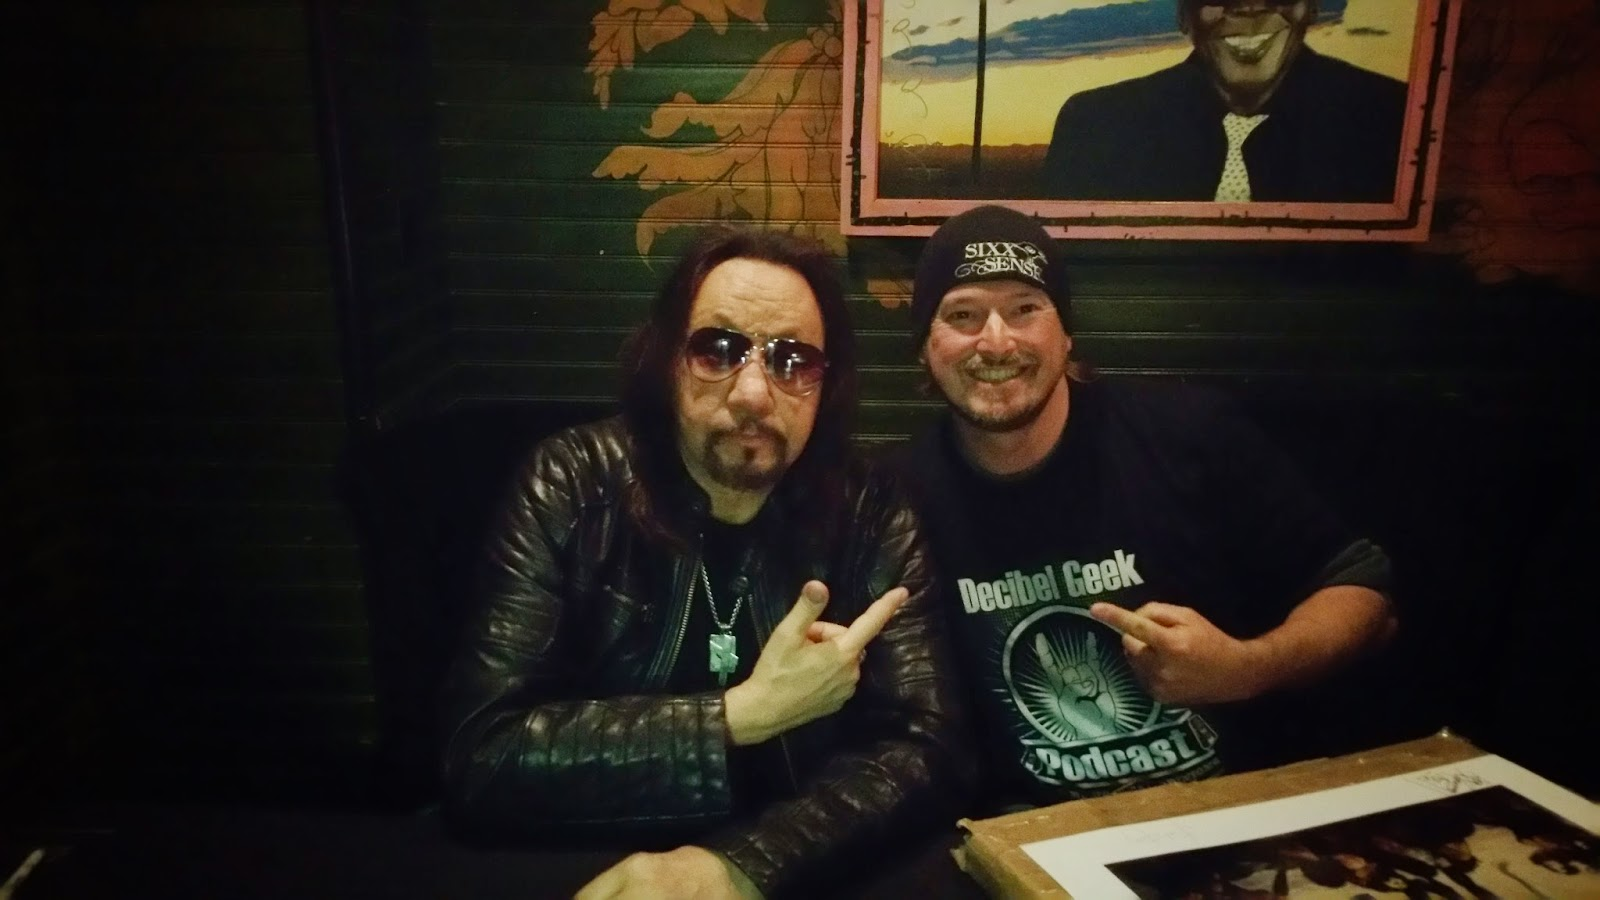 Ace frehley invades anaheim an ace frehley show review decibel the last time i saw ace play was with kiss was in 2000 on the kiss farewell tour and as been well documented he was not in very good form kristyandbryce Choice Image